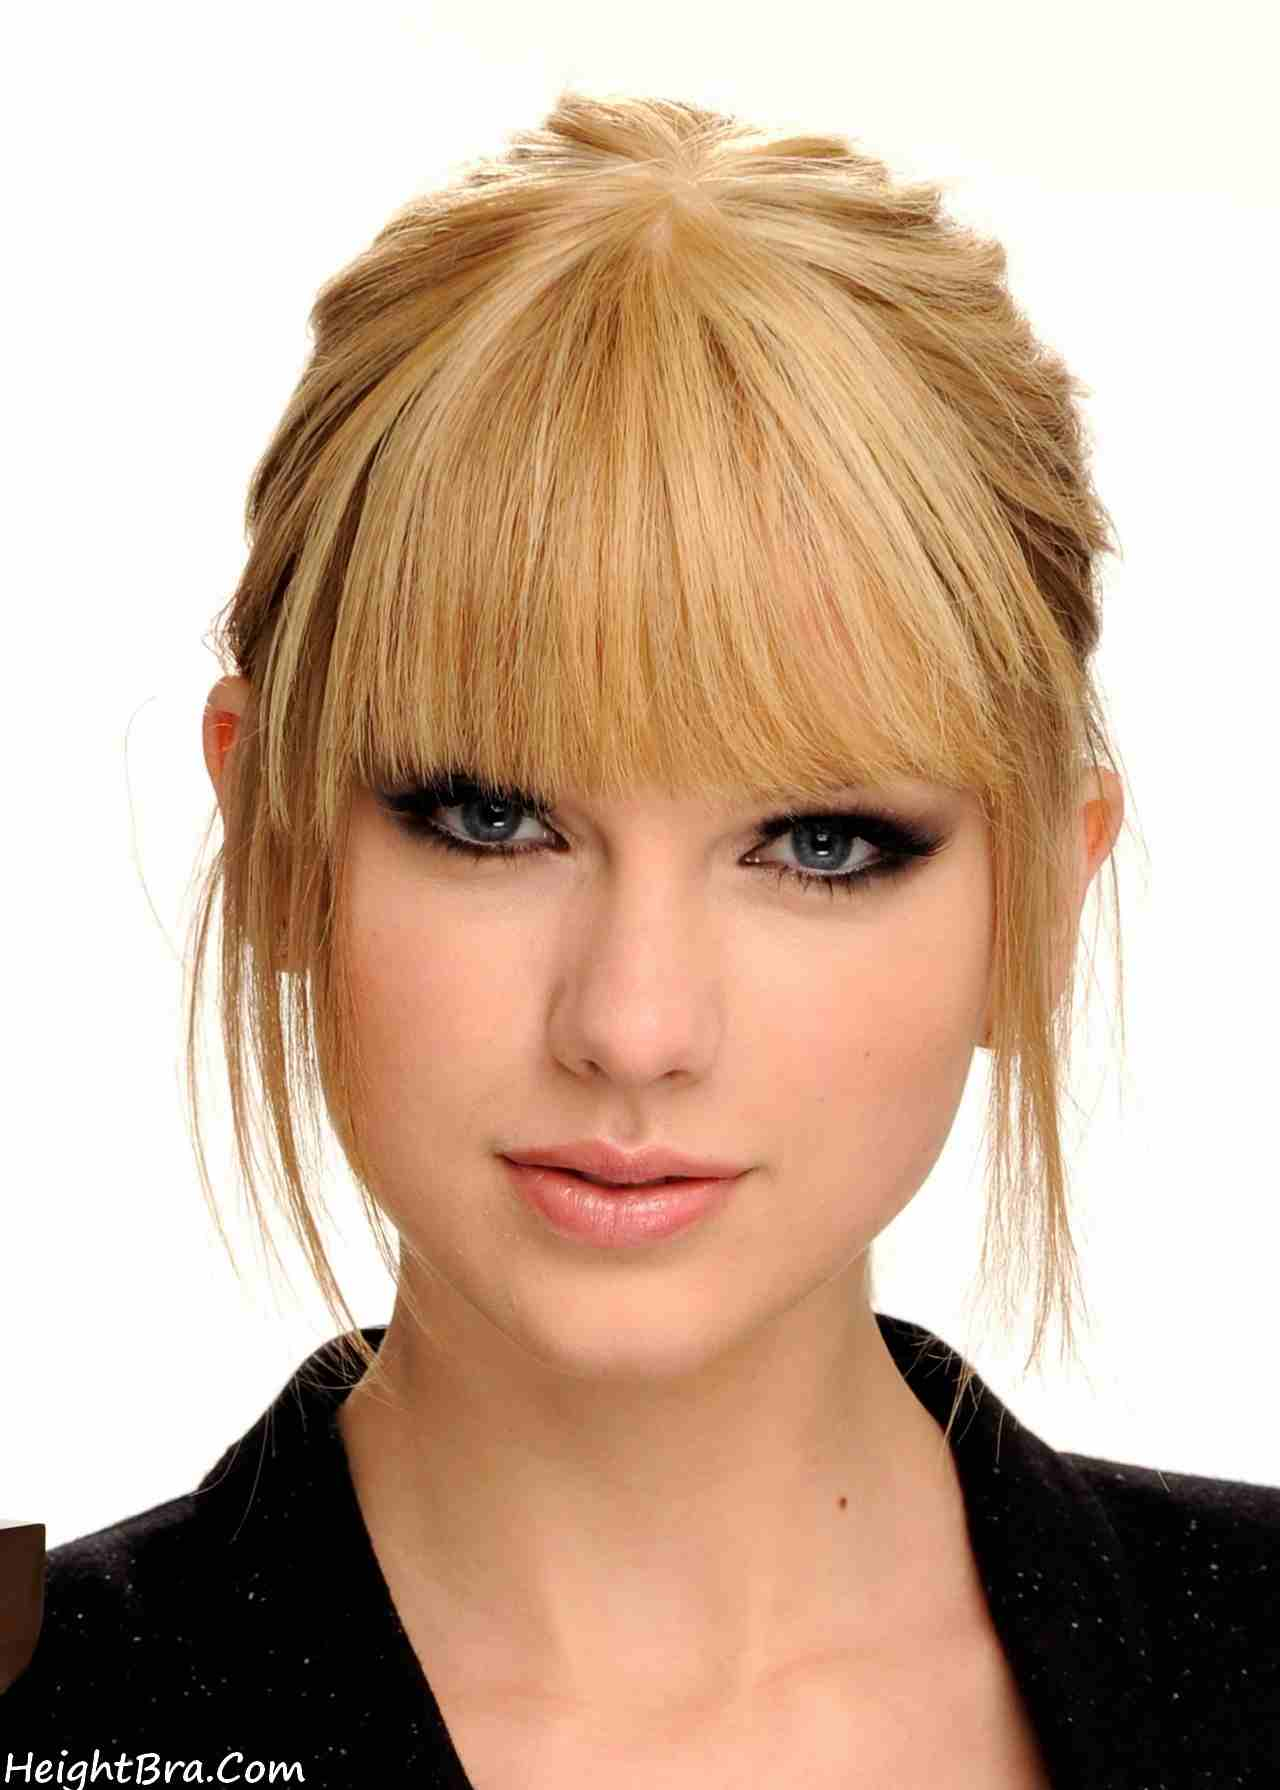 Taylor Swift Height, W...